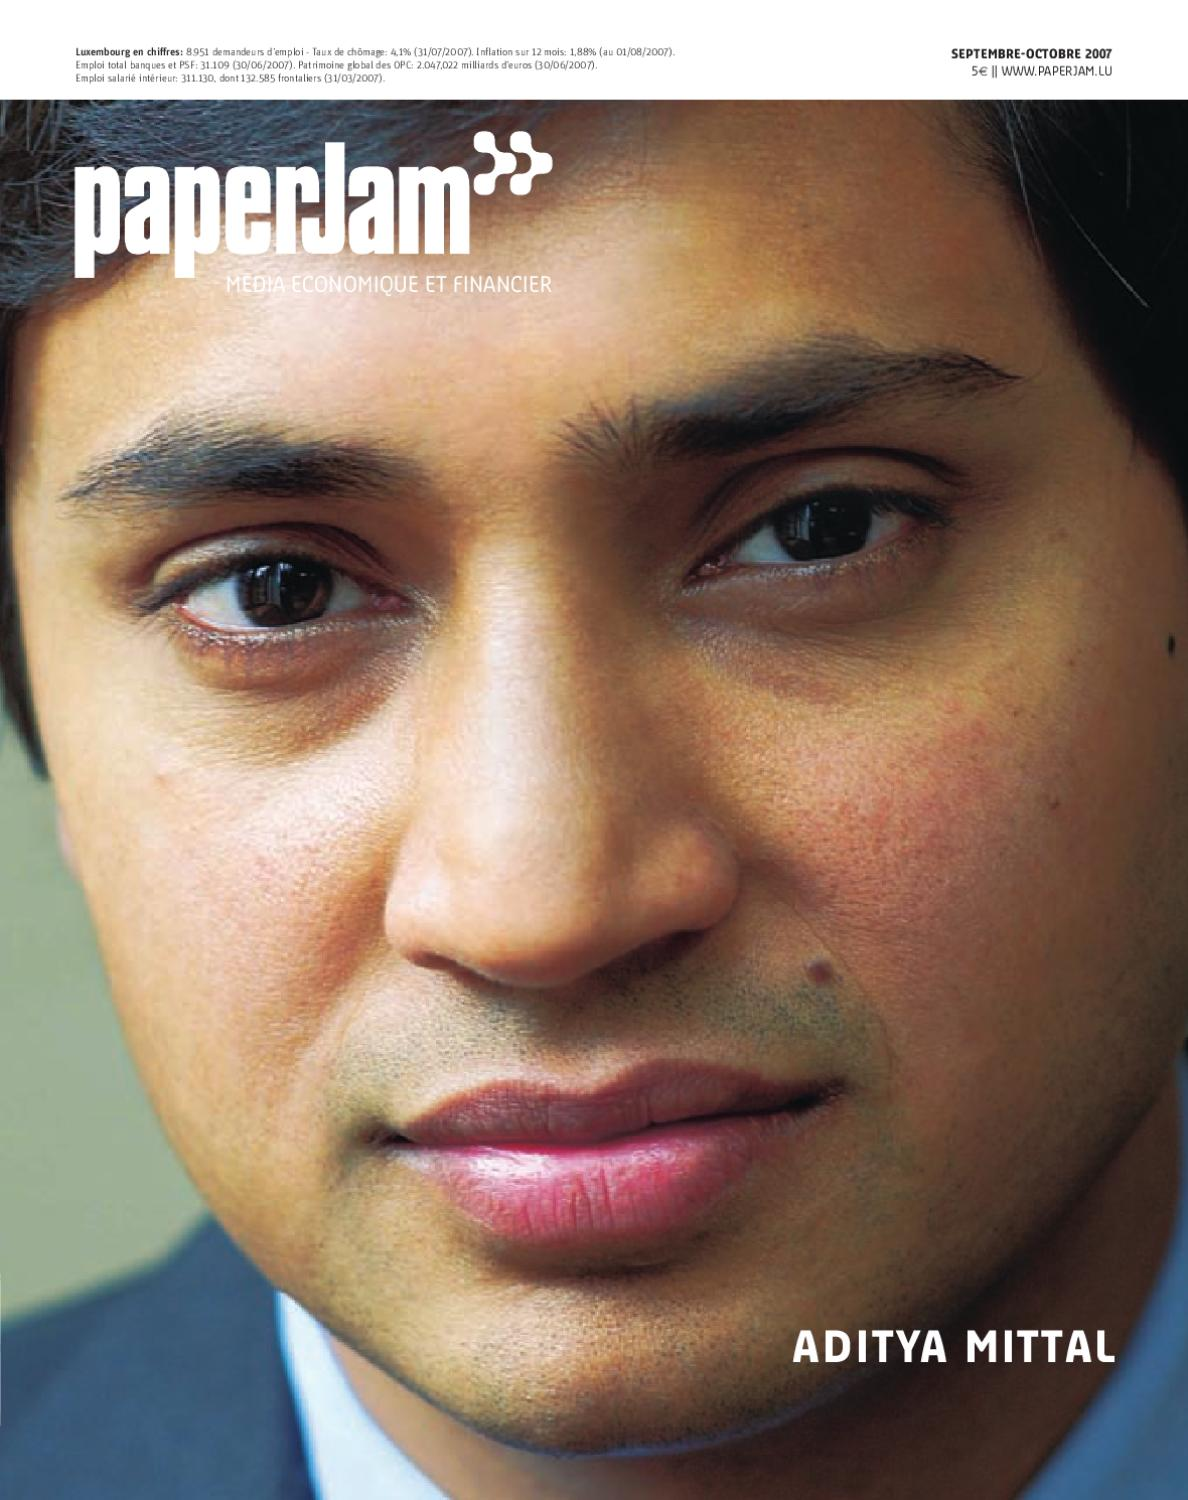 paperJam Management - Septembre 2007 by Maison Moderne Publishing - issuu 285449fec73